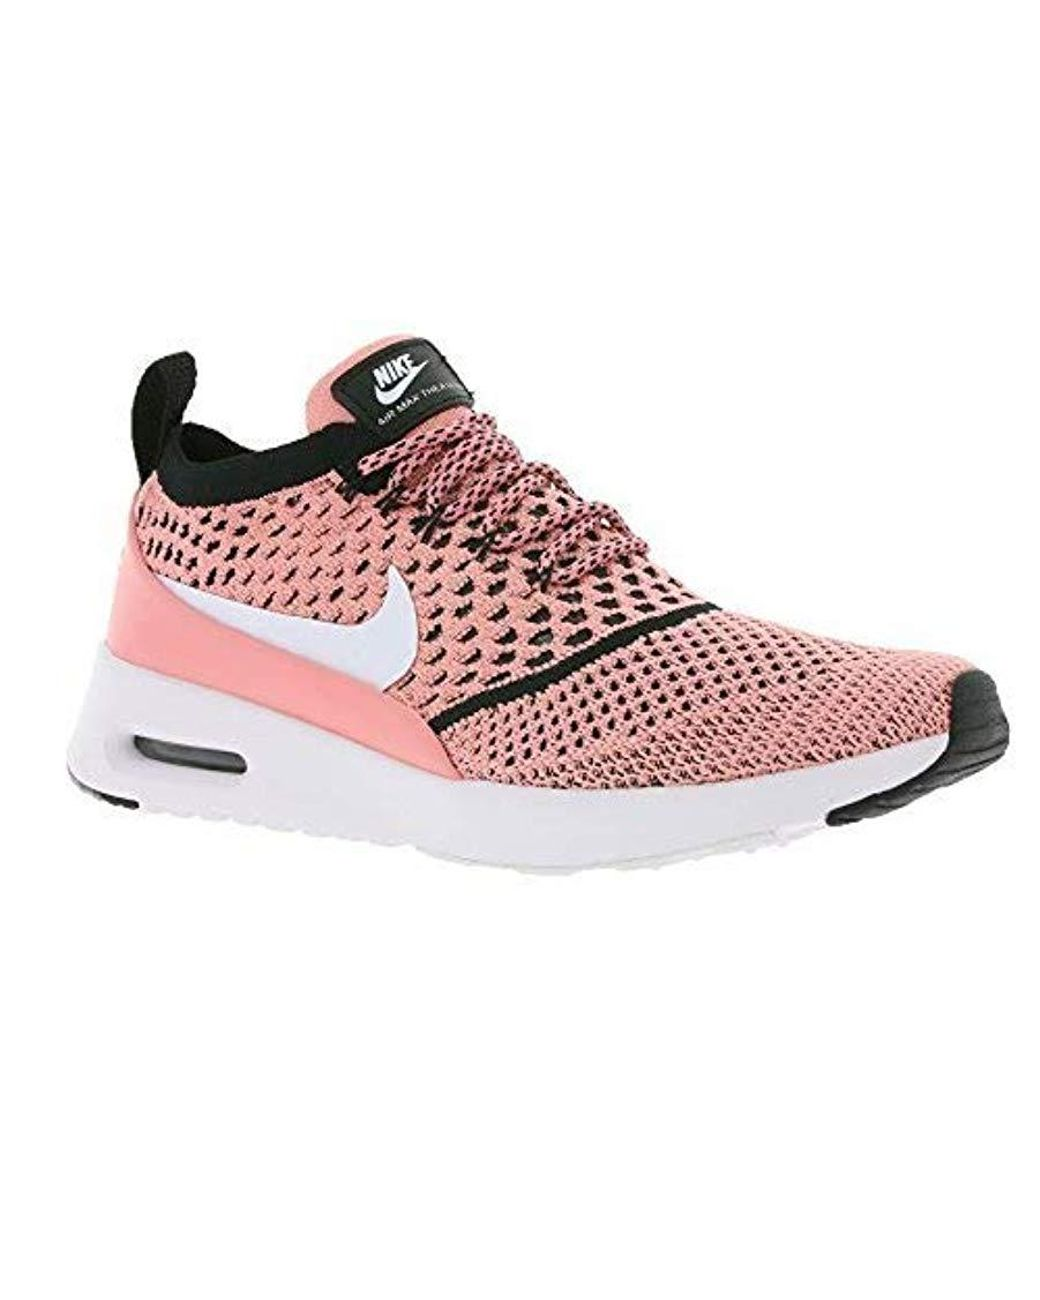 100% high quality san francisco shoes for cheap Nike Air Max Thea Ultra Flyknit Trainers - Lyst